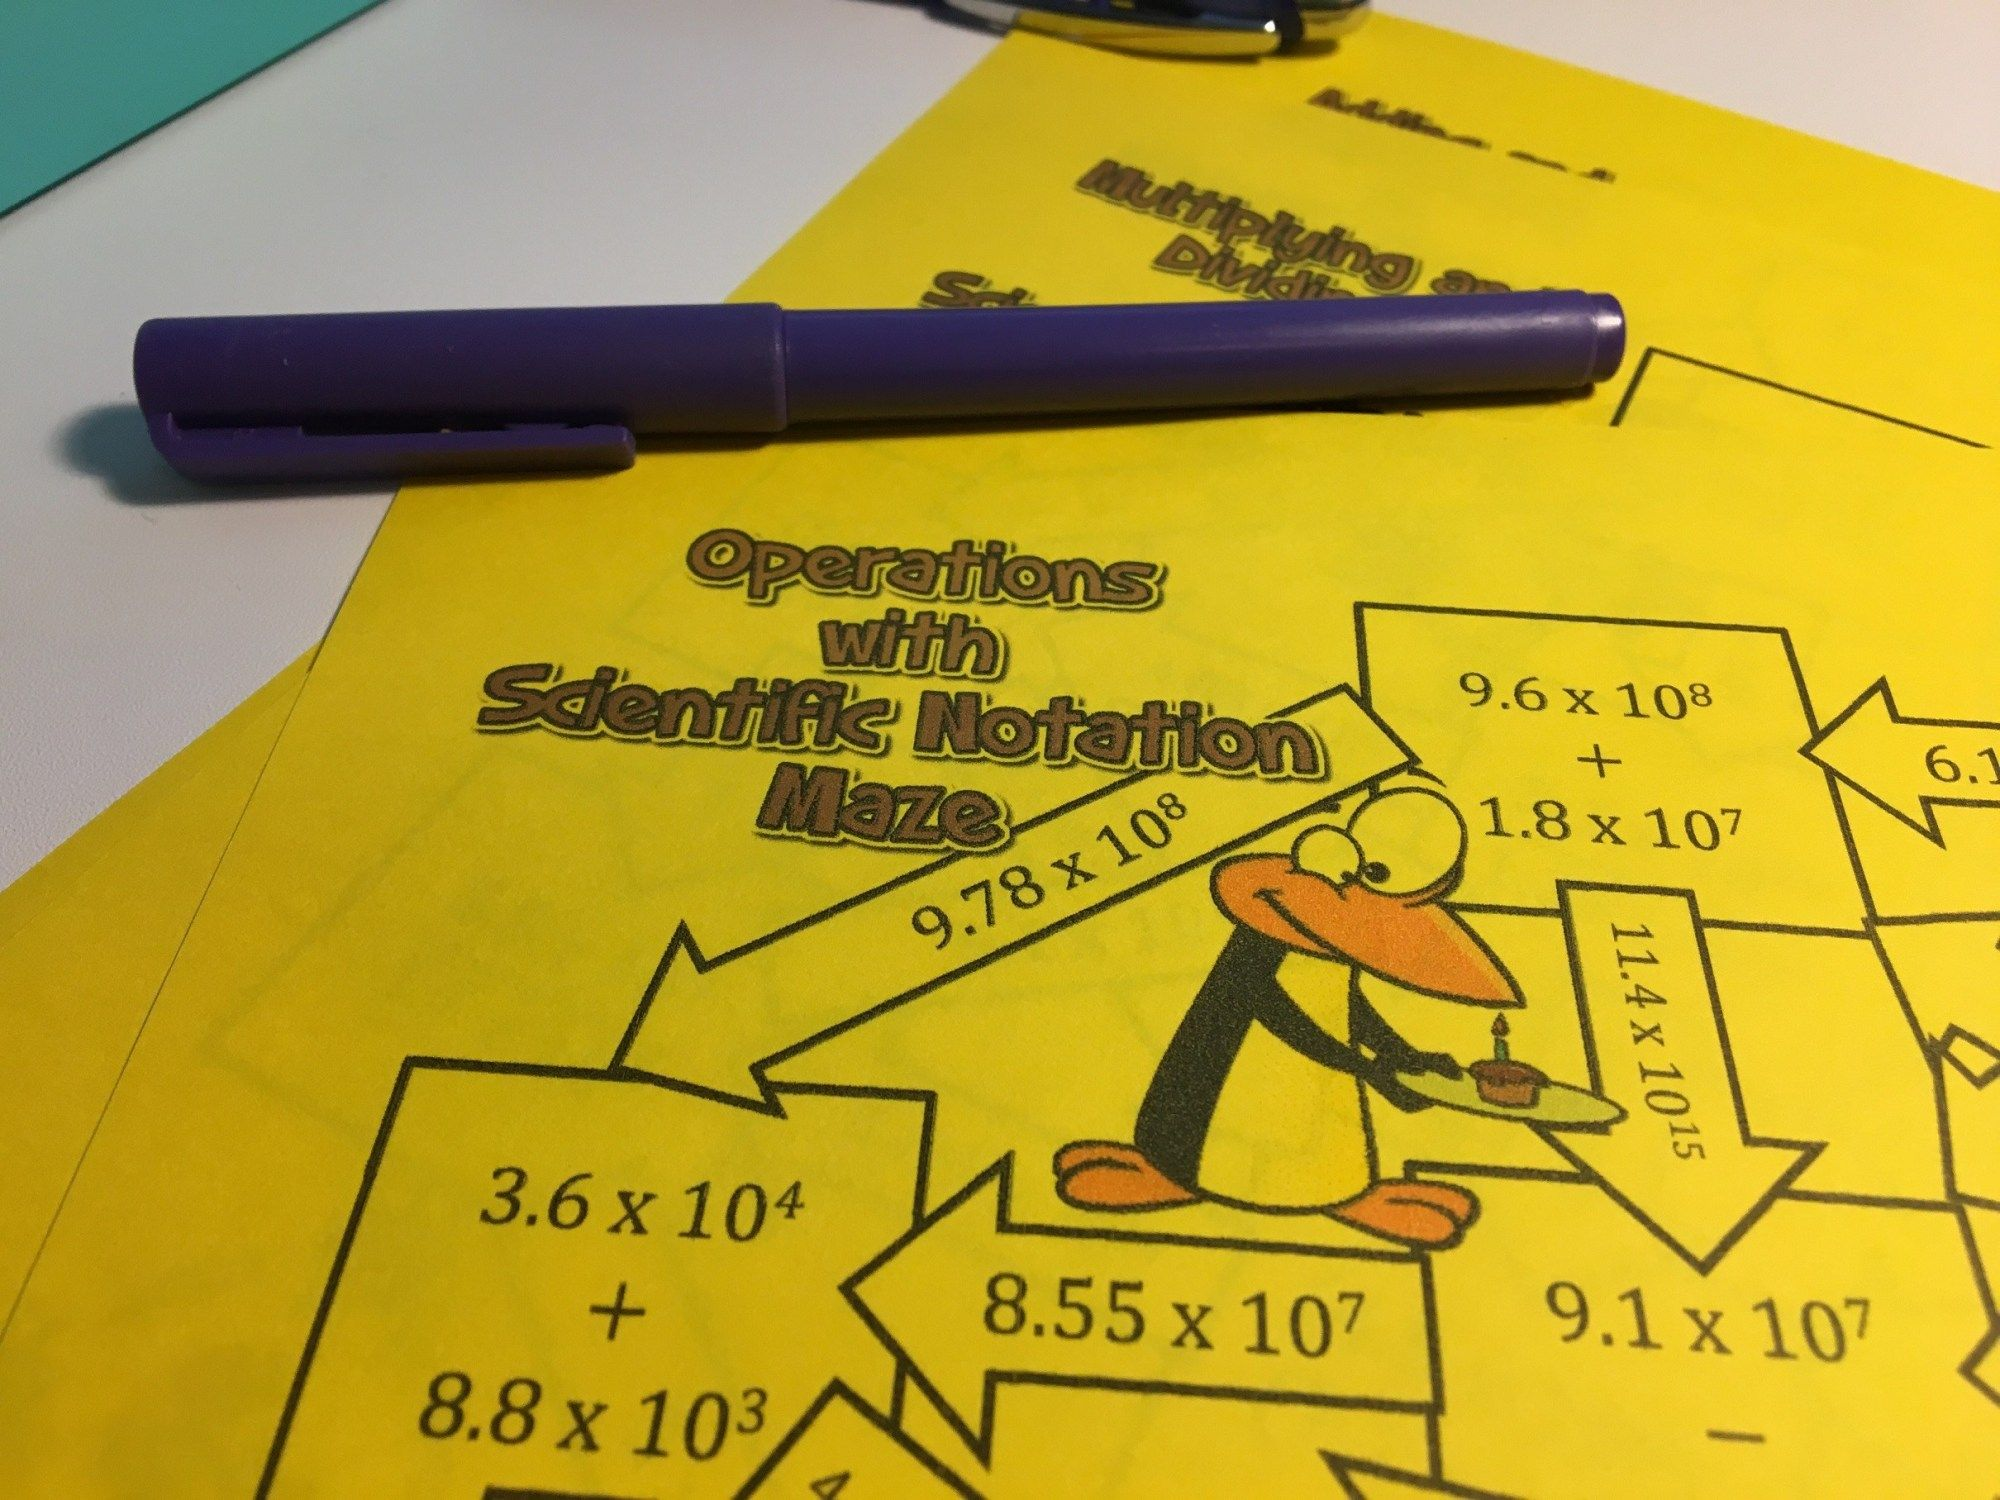 9 Operations With Scientific Notation Activities